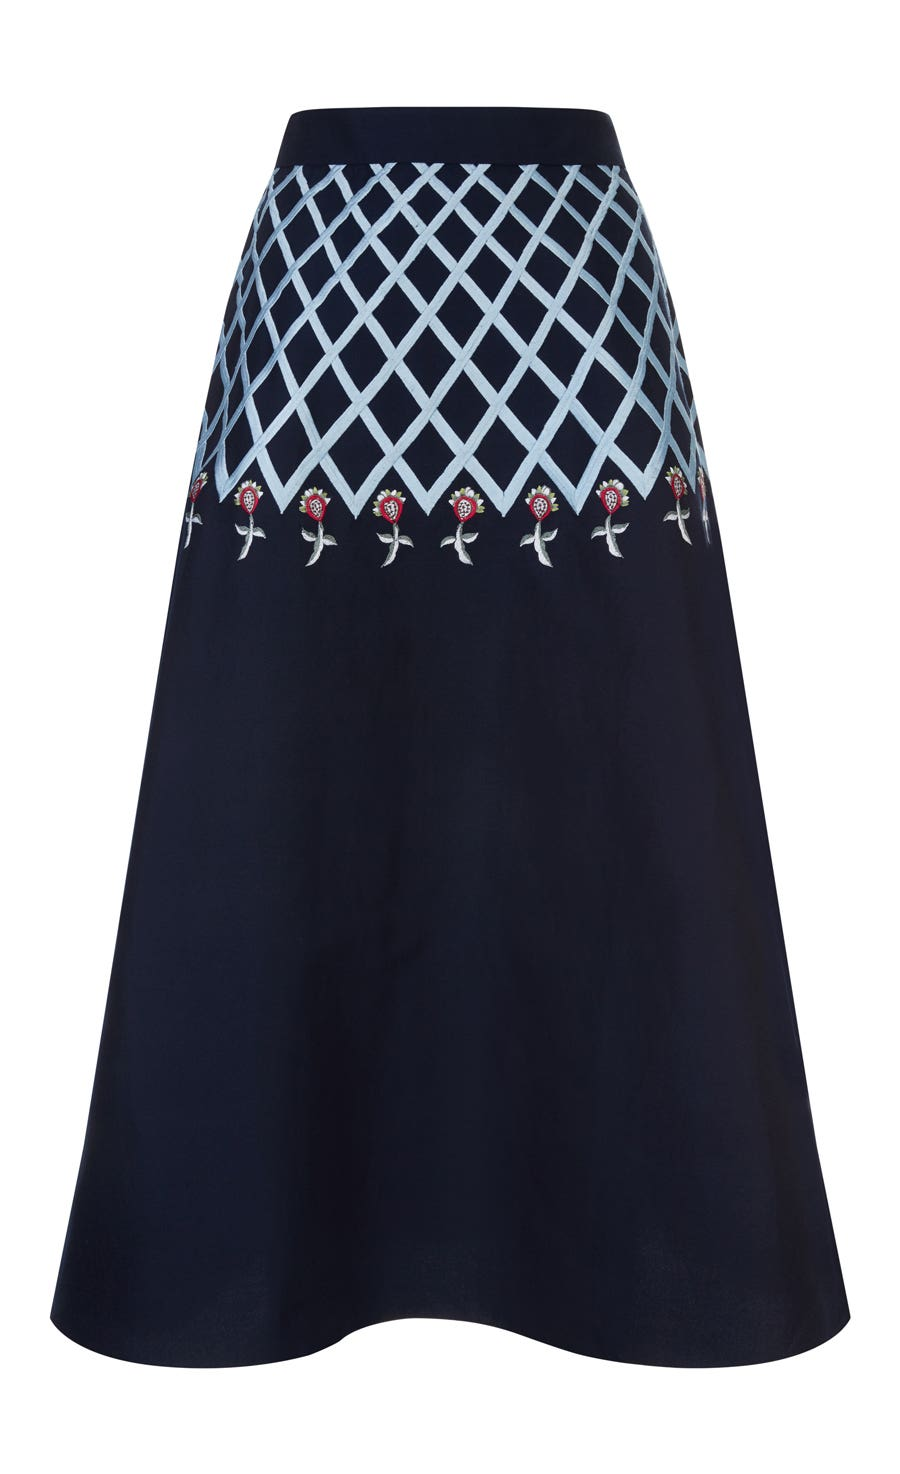 Poppy Field Midi Skirt, Midnight Mix